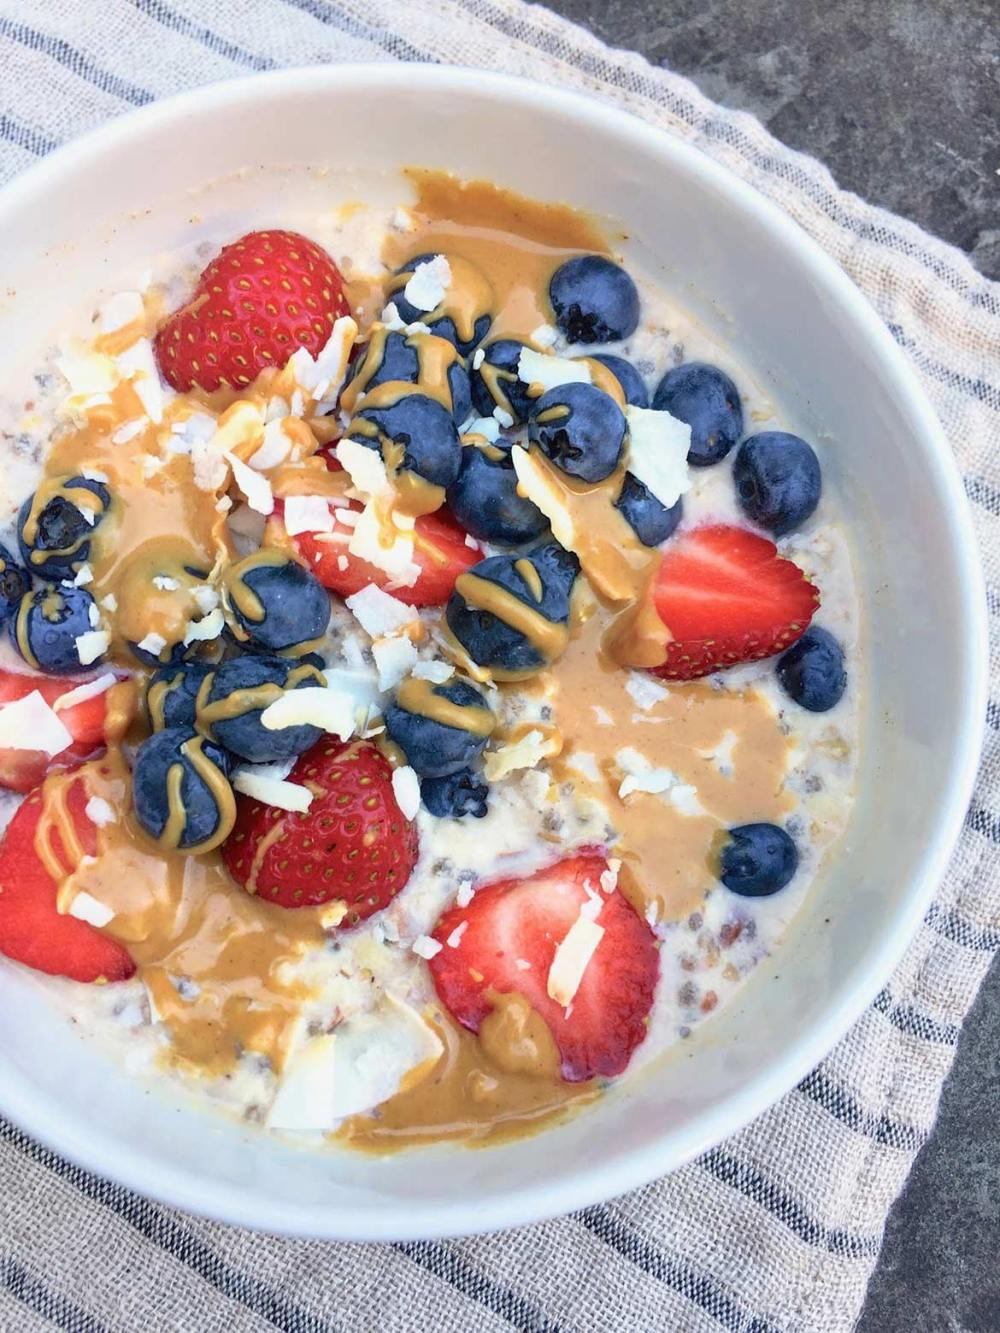 Nuts & Seeds Overnight N'Oats -- Paleo, vegan, gluten- and dairy-free, this wholesome breakfast can be customized to taste and provides serious staying power.